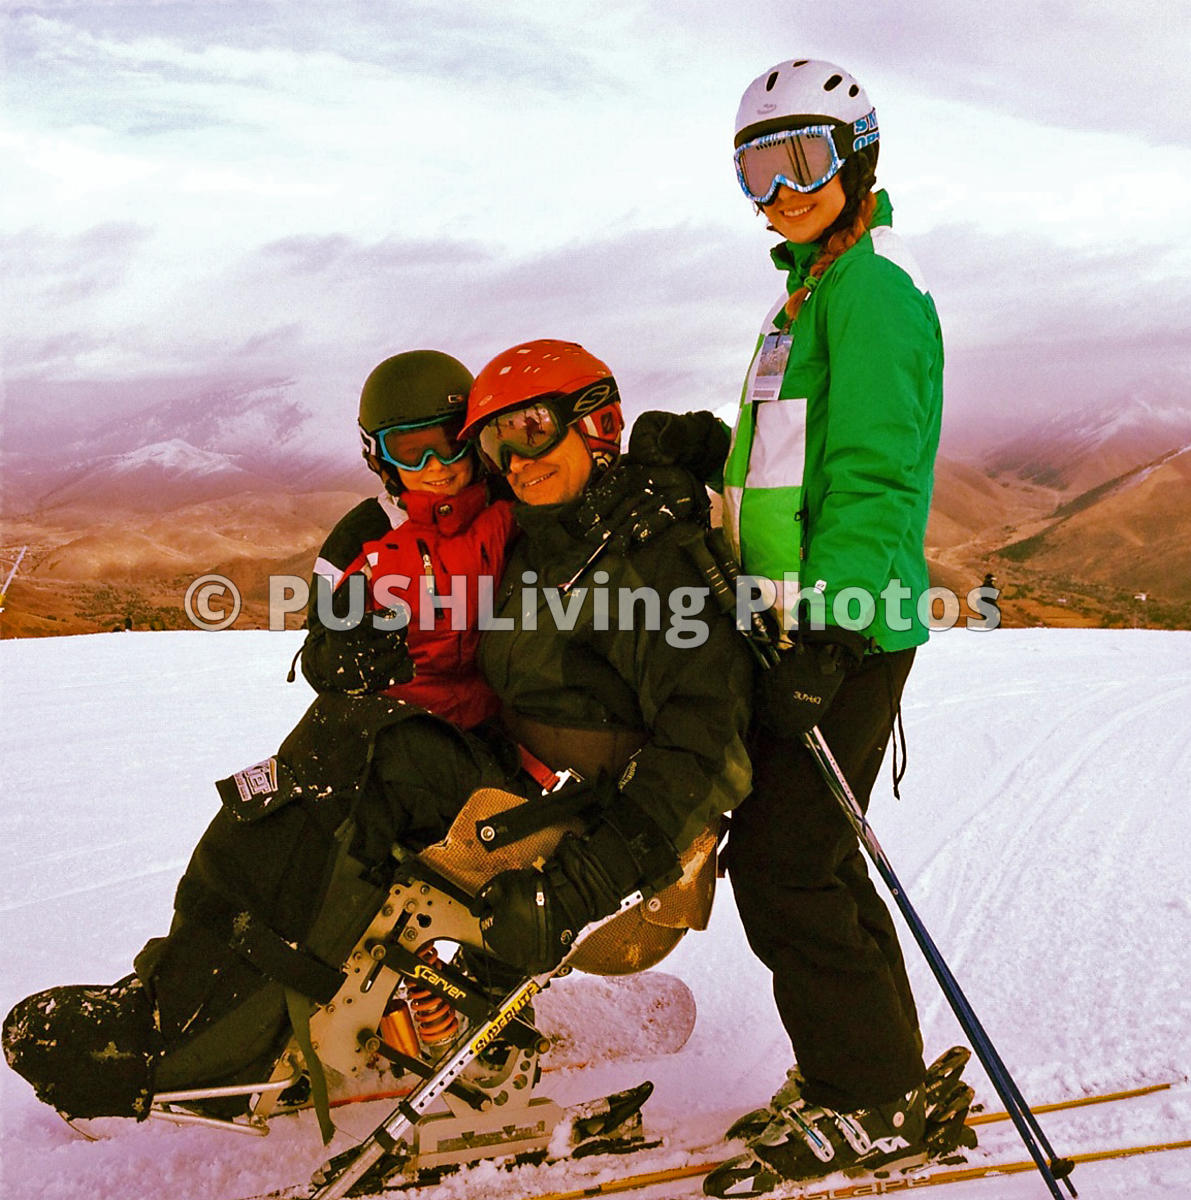 Skiing with kids, Sun Valley Idaho